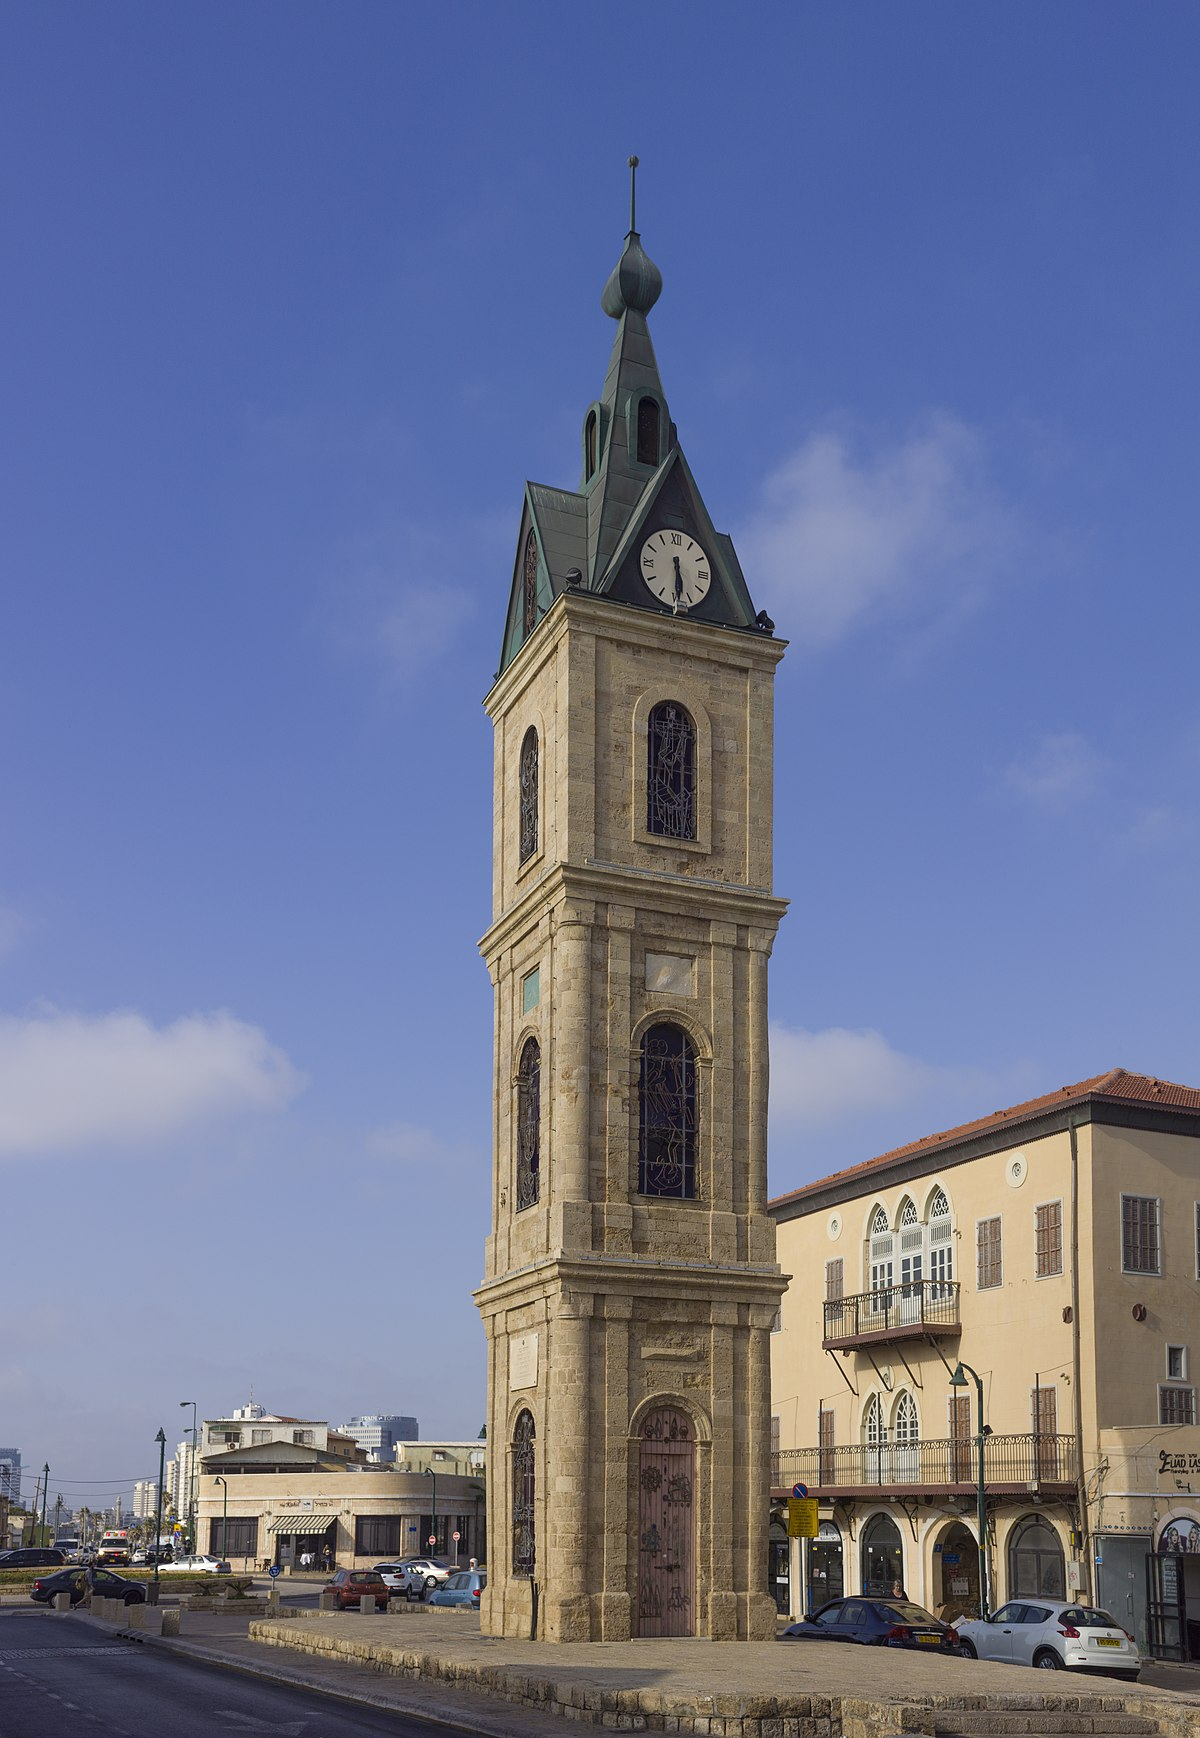 Jaffa Clock Tower - Wikipedia